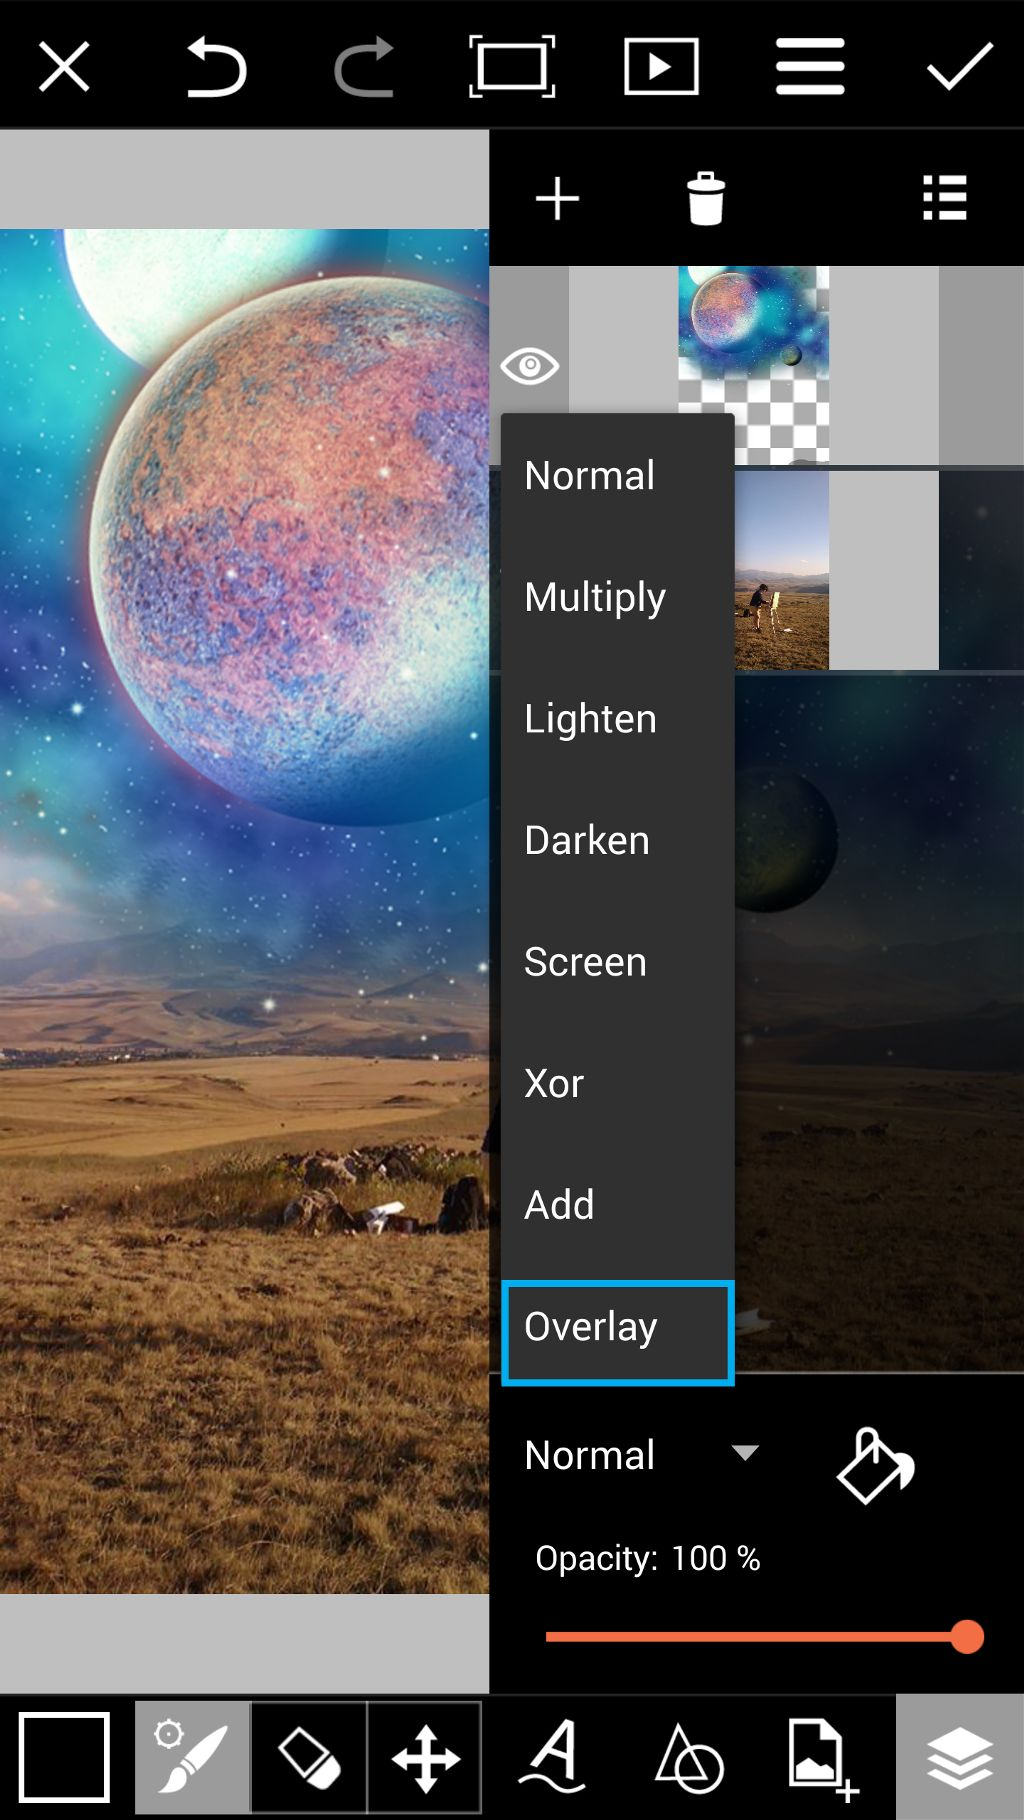 Choose the overlay blending mode